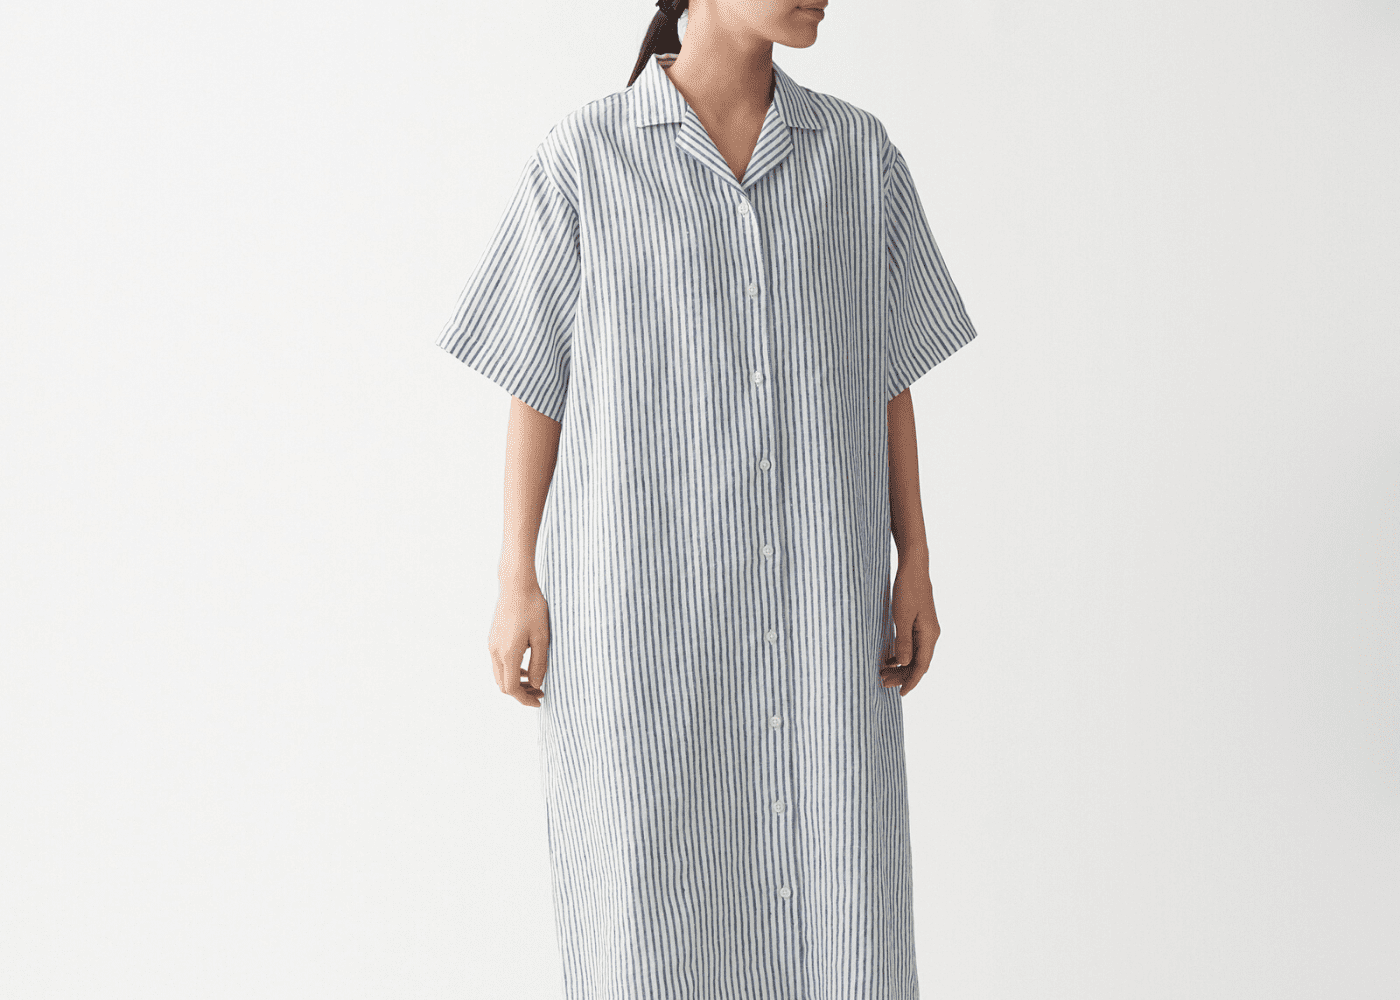 Muji's latest Spring/Summer collection